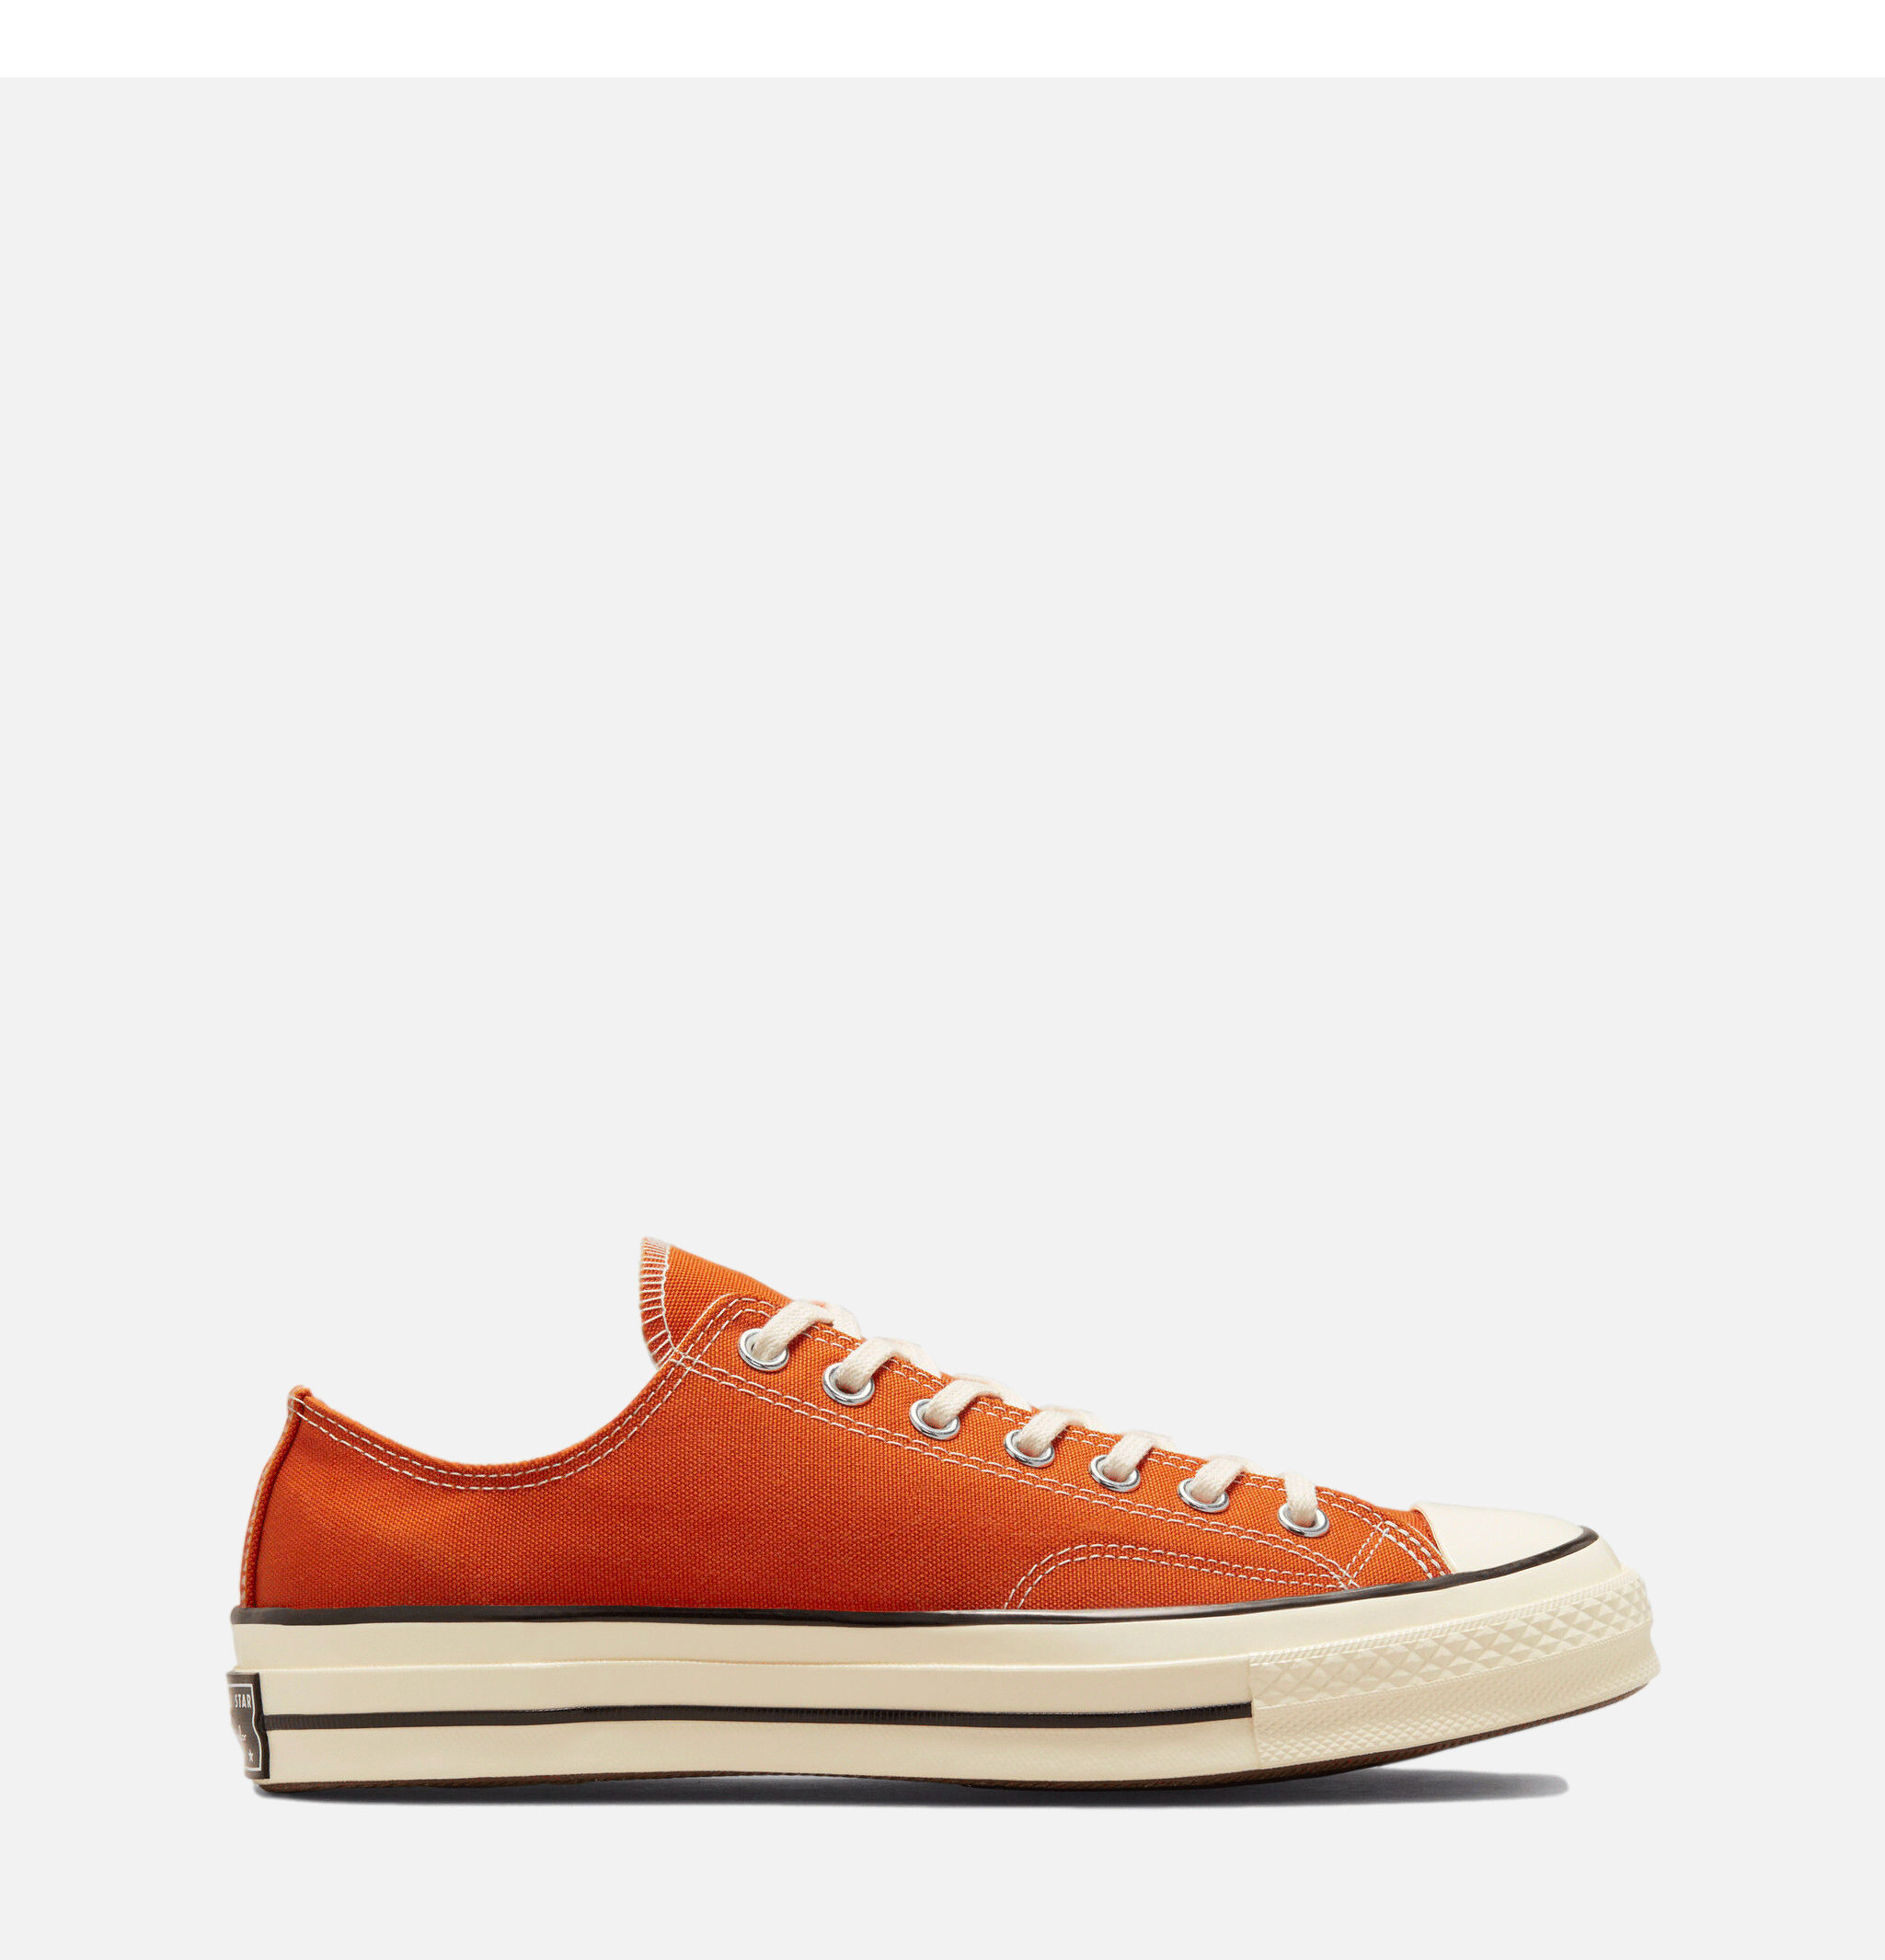 Chuck Taylor 70s Low Fire Red